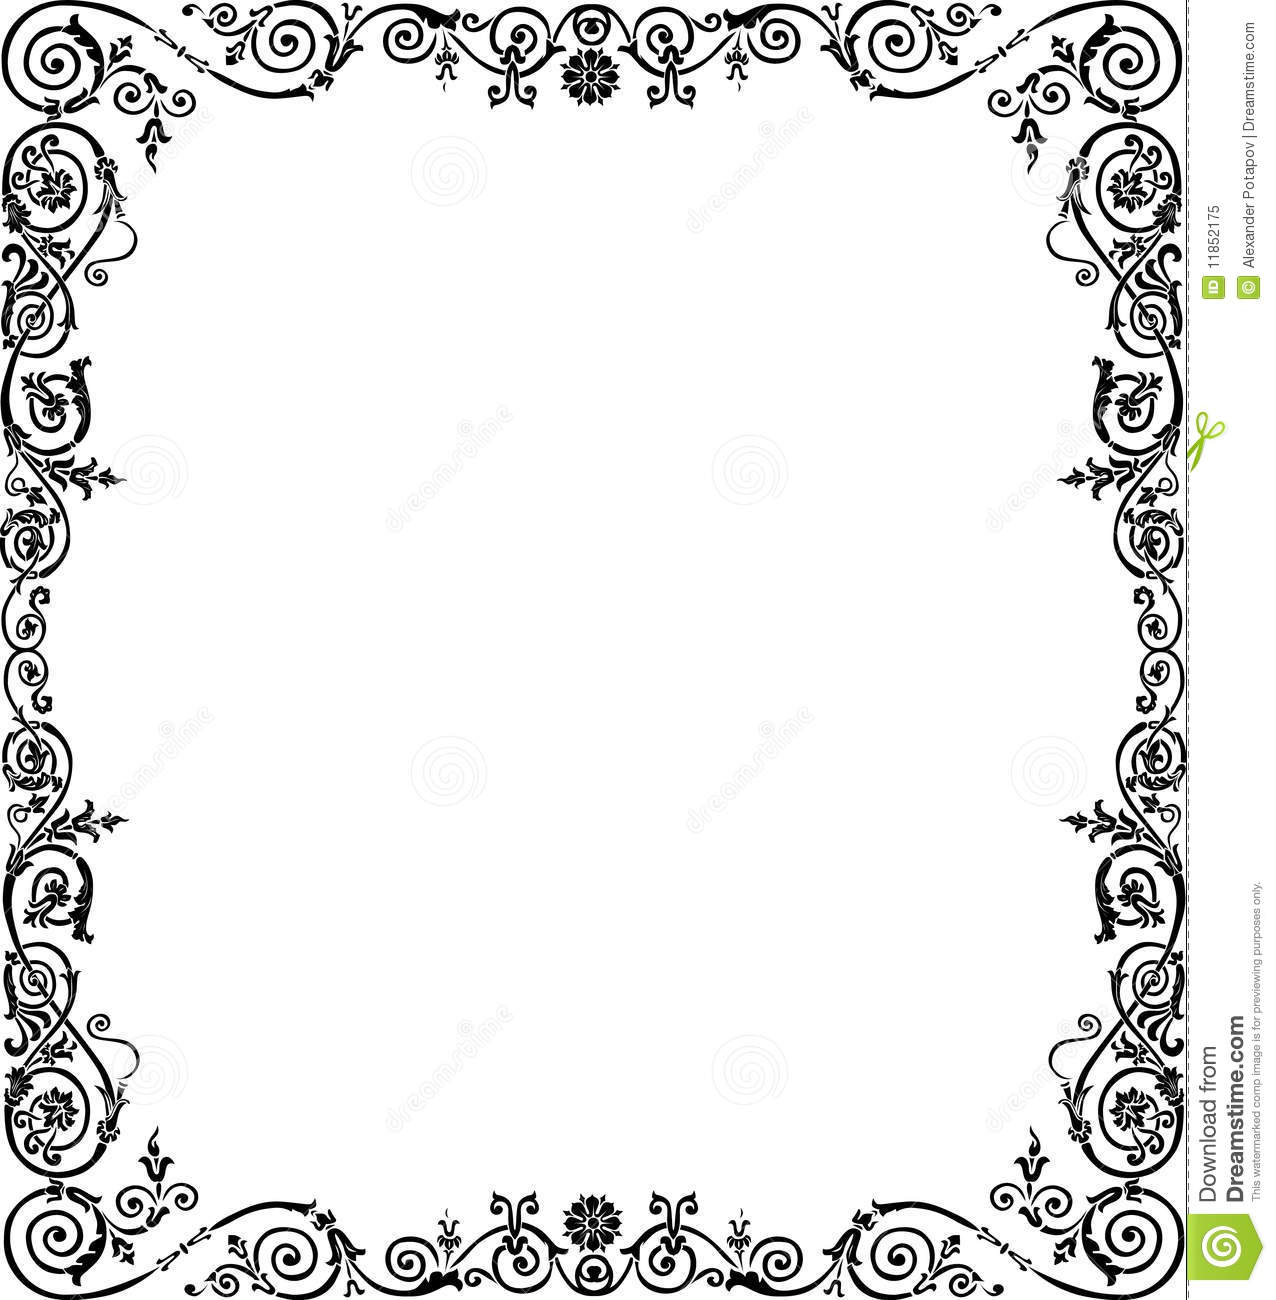 . Curled Black Frame Decoration Stock Vector   Illustration of corner